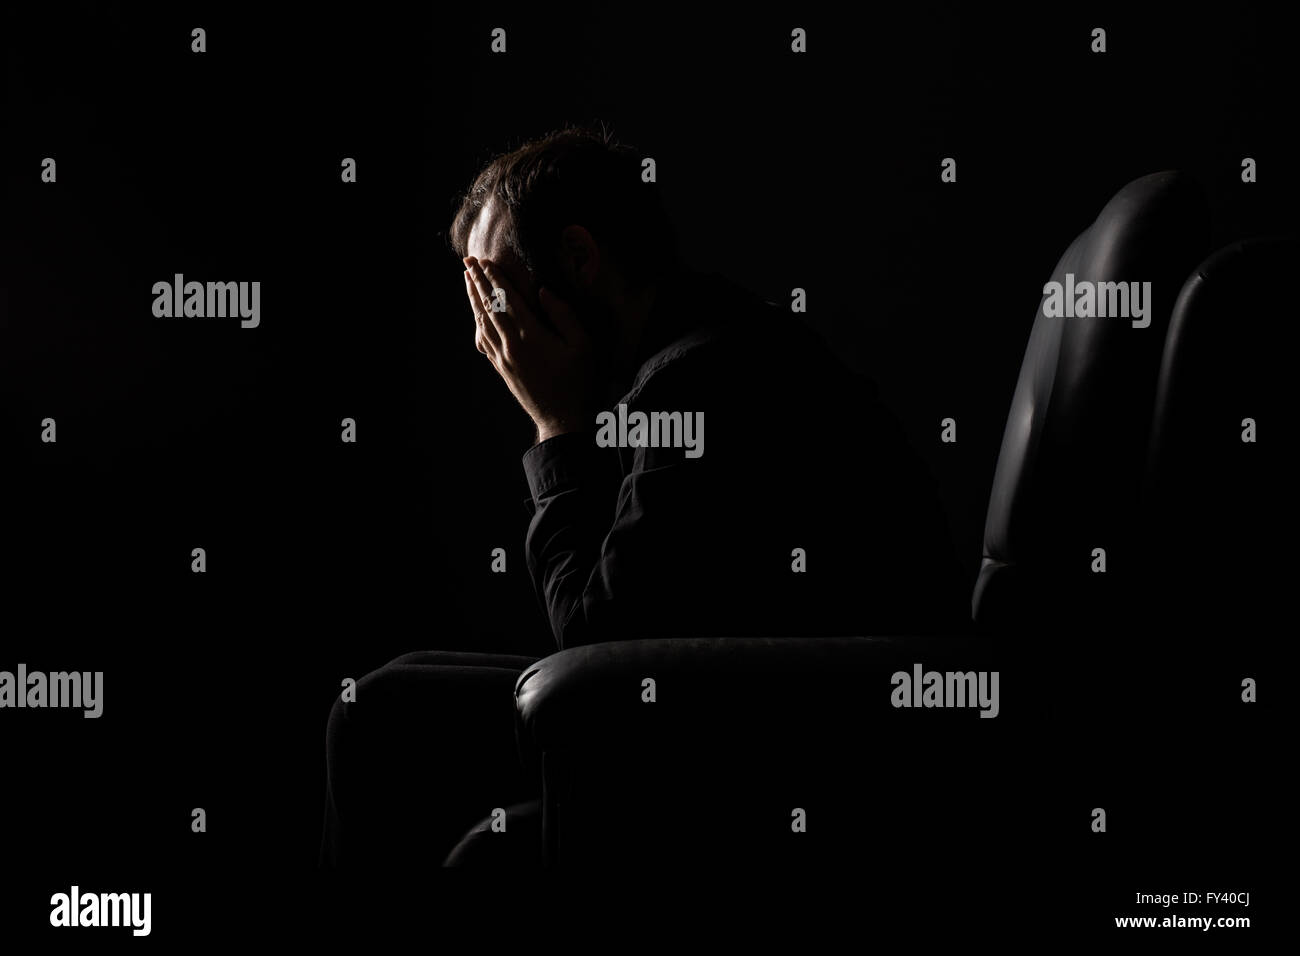 Desperate Man with Hands on His Face Sitting on an Armchair - Stock Image